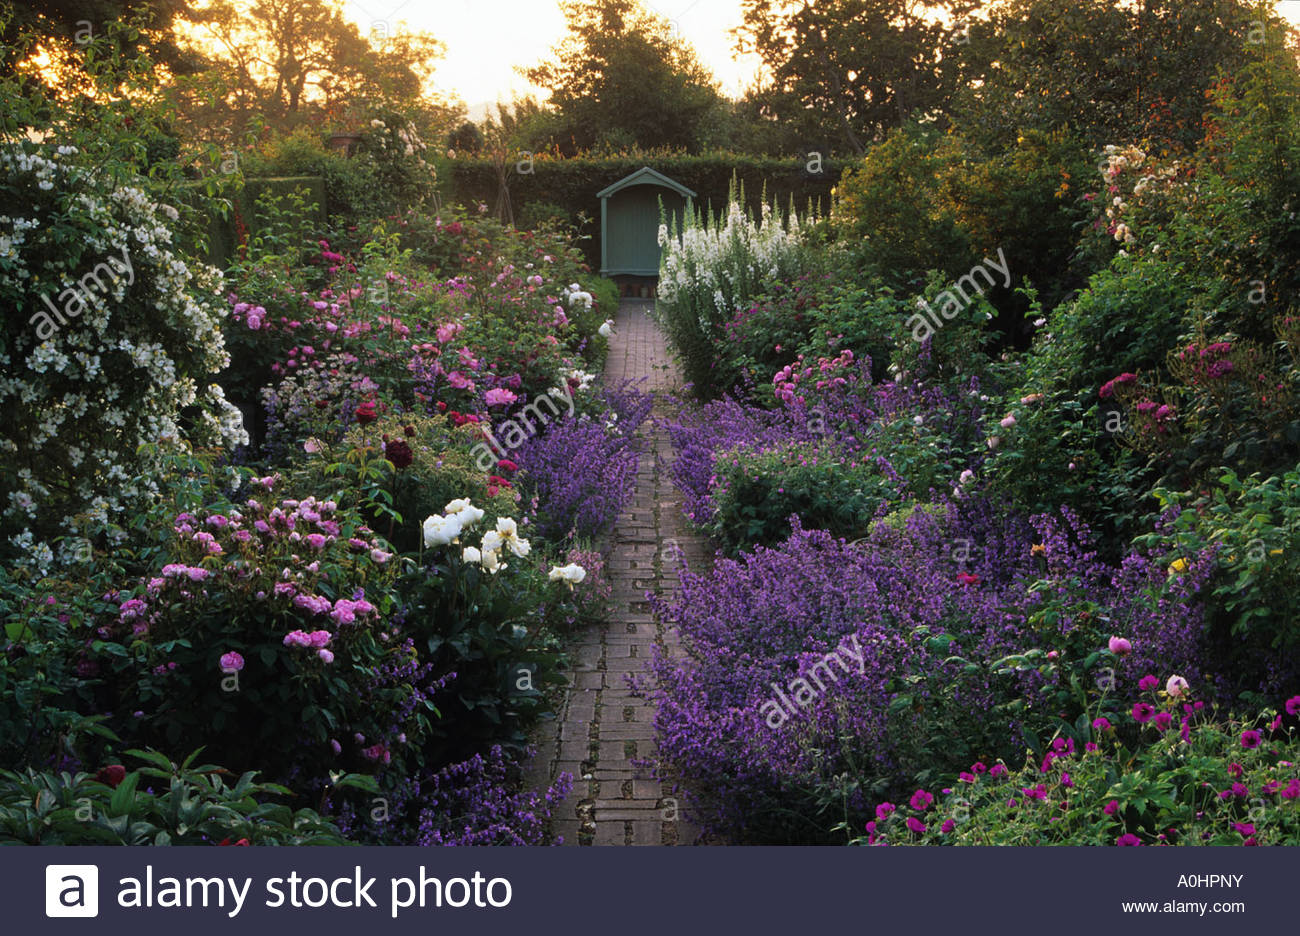 Wollerton Old Hall. Shropshire. Scented Garden Room At Dawn. Beech Hedge.  Path